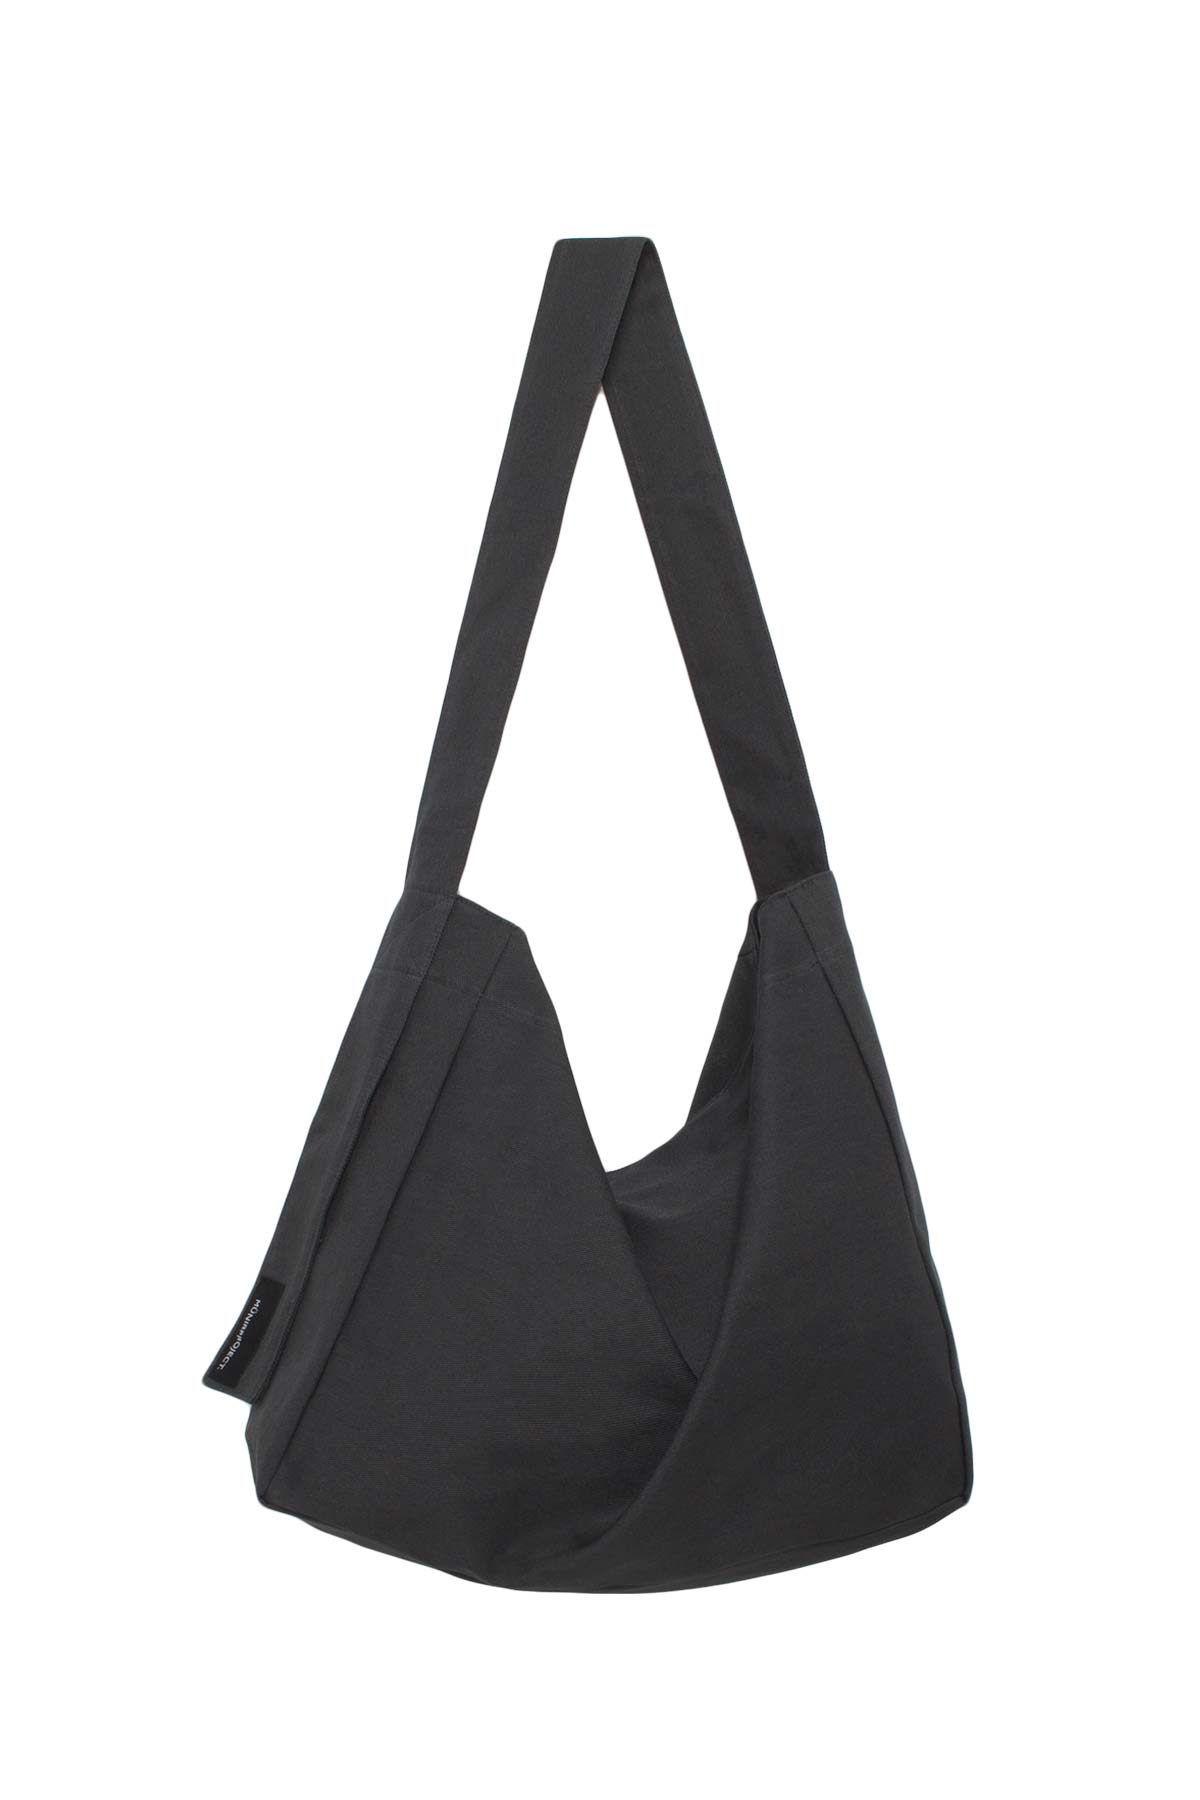 [MagnetBag] New Hobo line